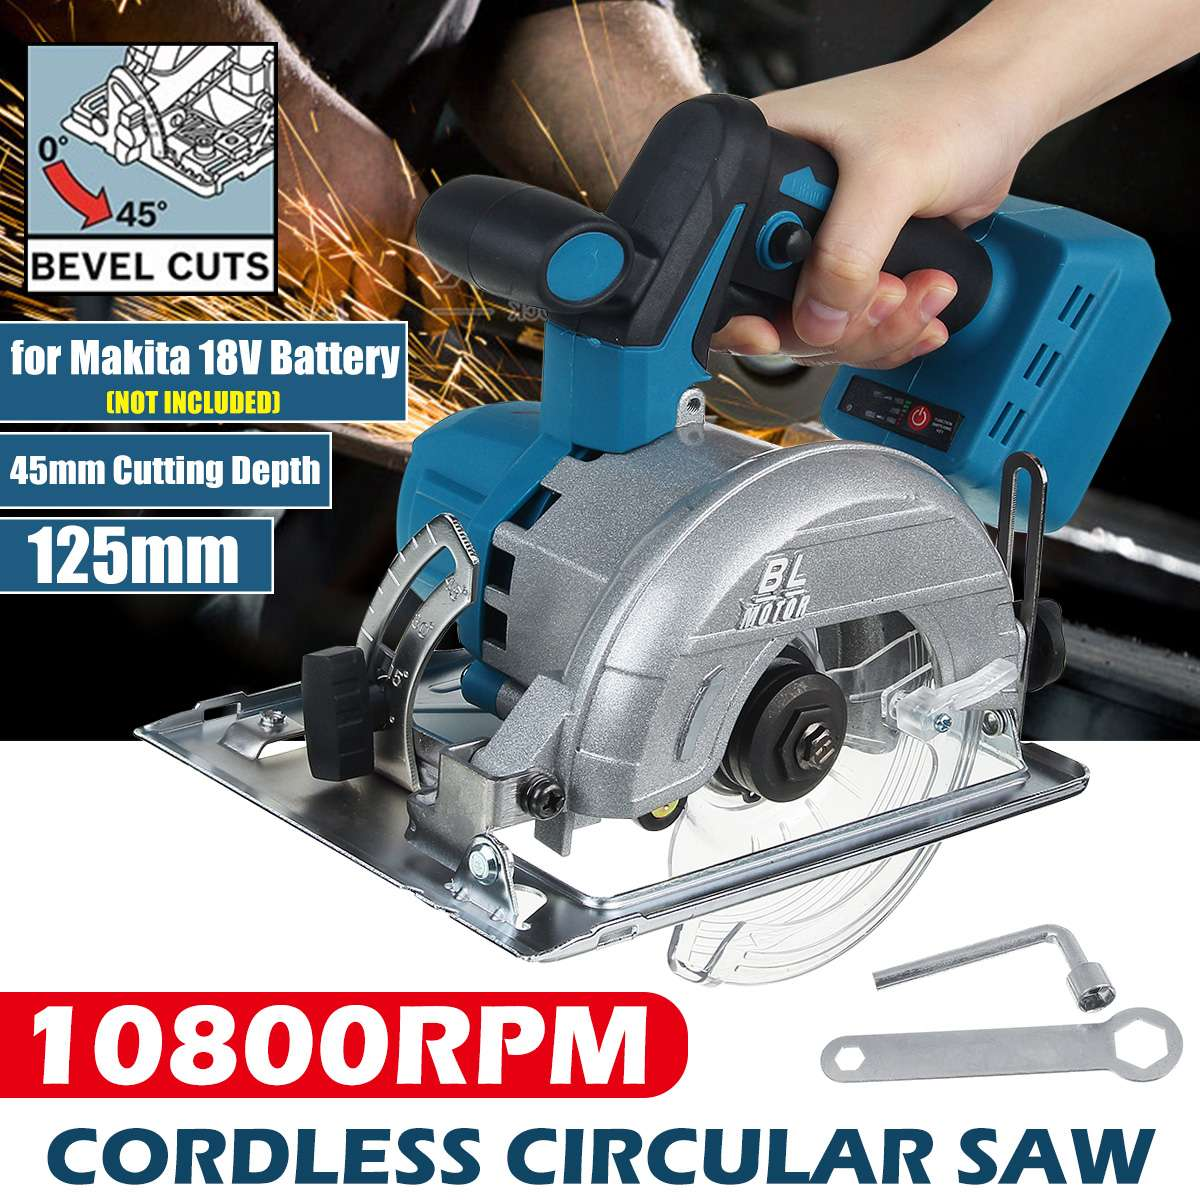 Wood Machine Power For Passage Multifunction Battery 10800RPM Saw 18V Makita Electric Cutting Dust Tools 125mm Cordless Circular